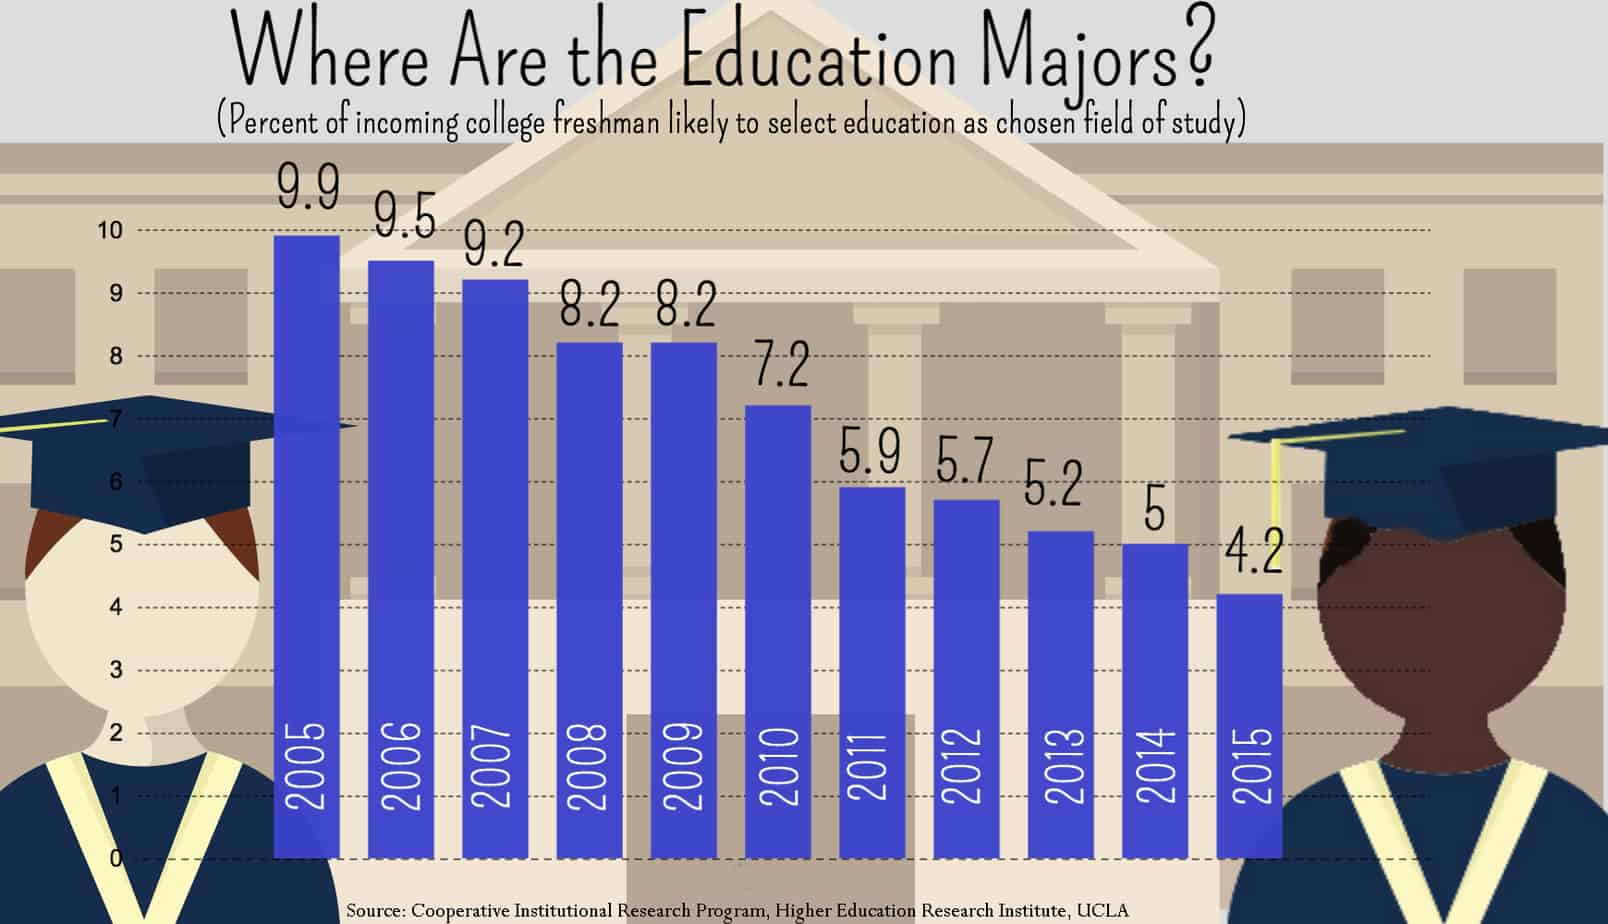 Education Majors Data